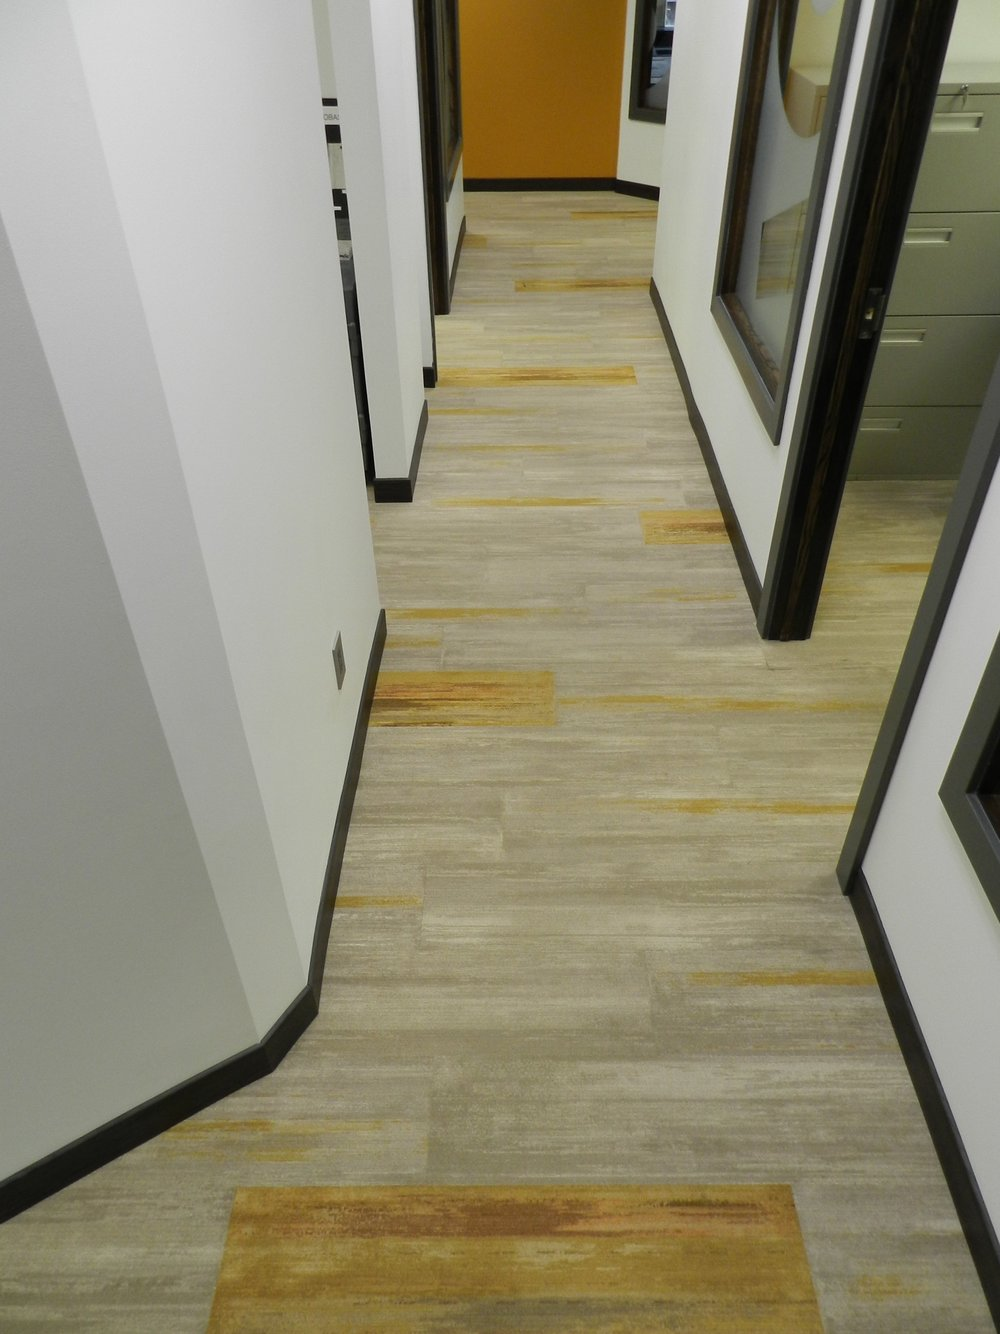 Milliken's color field carpet tile is a staff favorite for good reason. Its uber-durable and has such a fun color pallet. We knew this would be a perfect fir for the Obassa team.